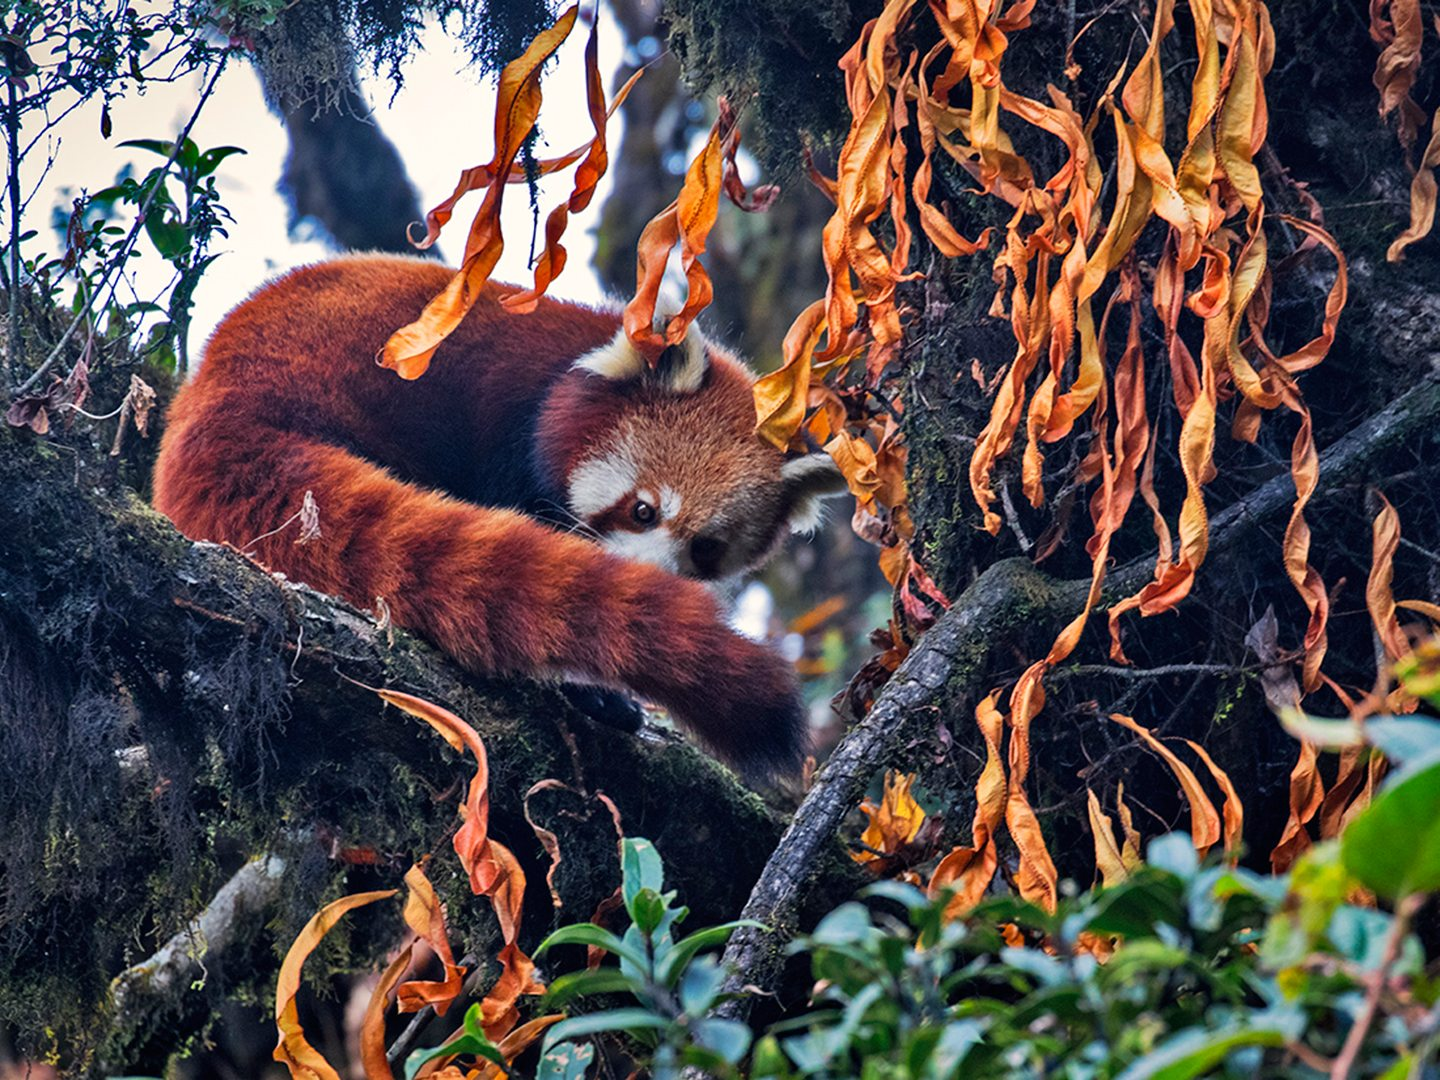 Like the black-and-white giant pandas, red pandas can also be found high altitude forests where they use their bushy tails as wraparound blankets. This furball was pictured in West Bengal's Singalila National Park.